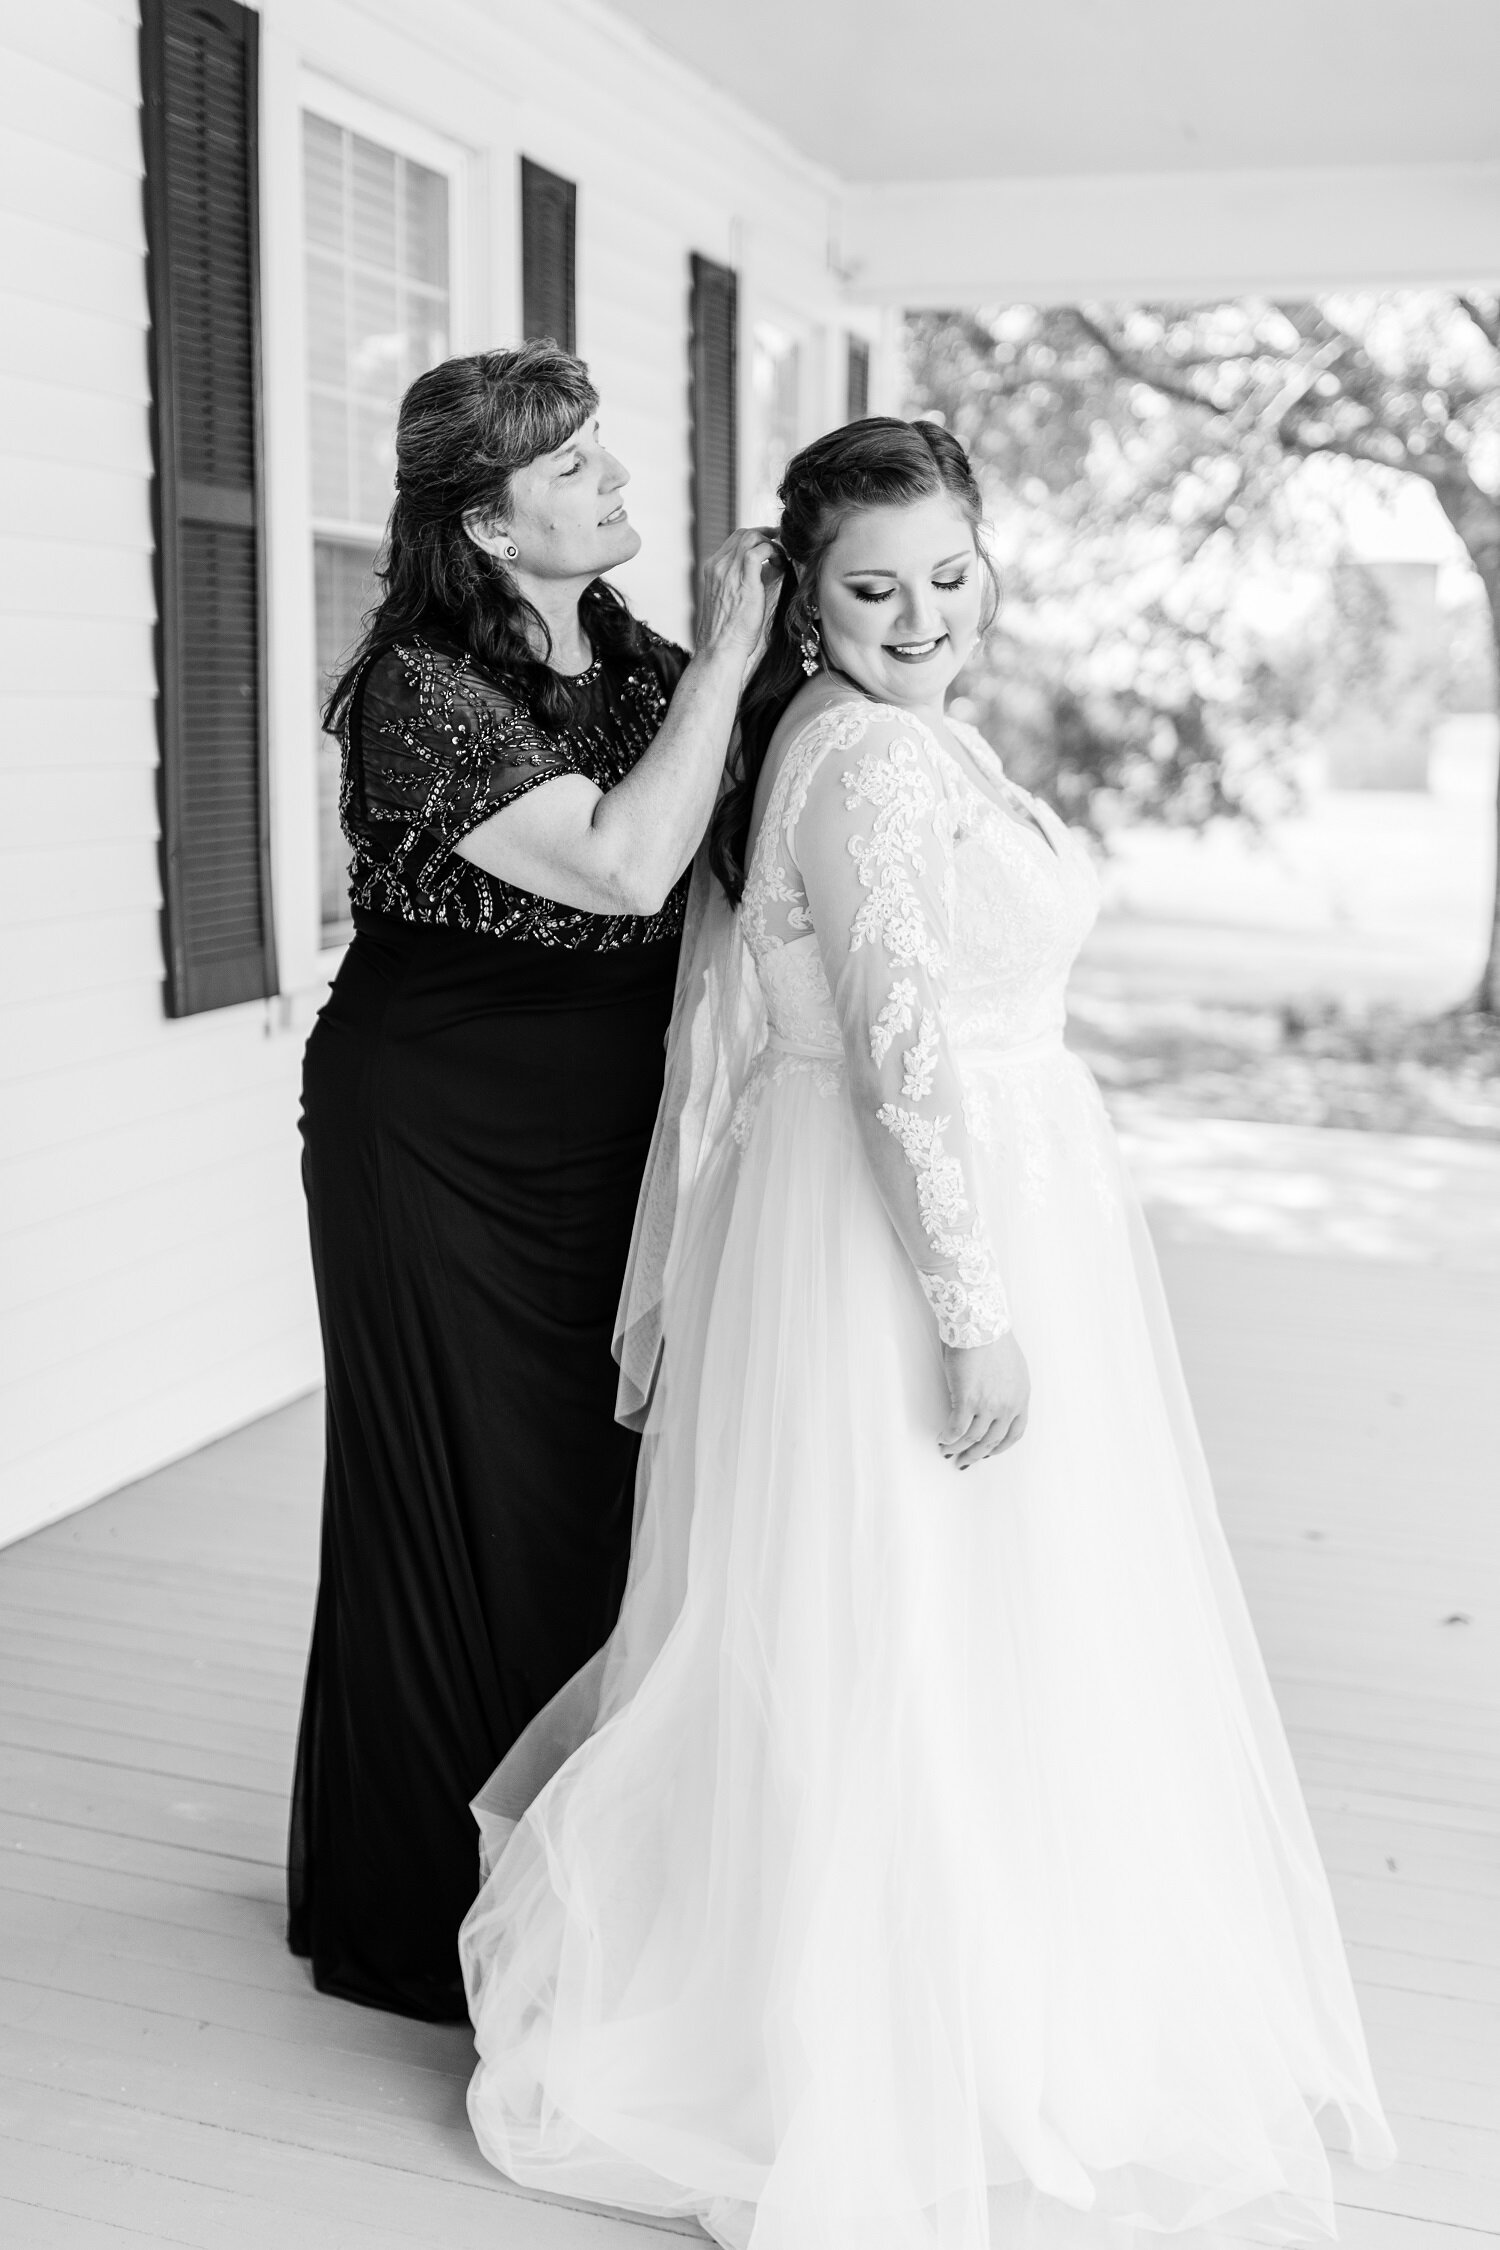 Hemphill Wedding - Shea's Favorites_-37.jpg